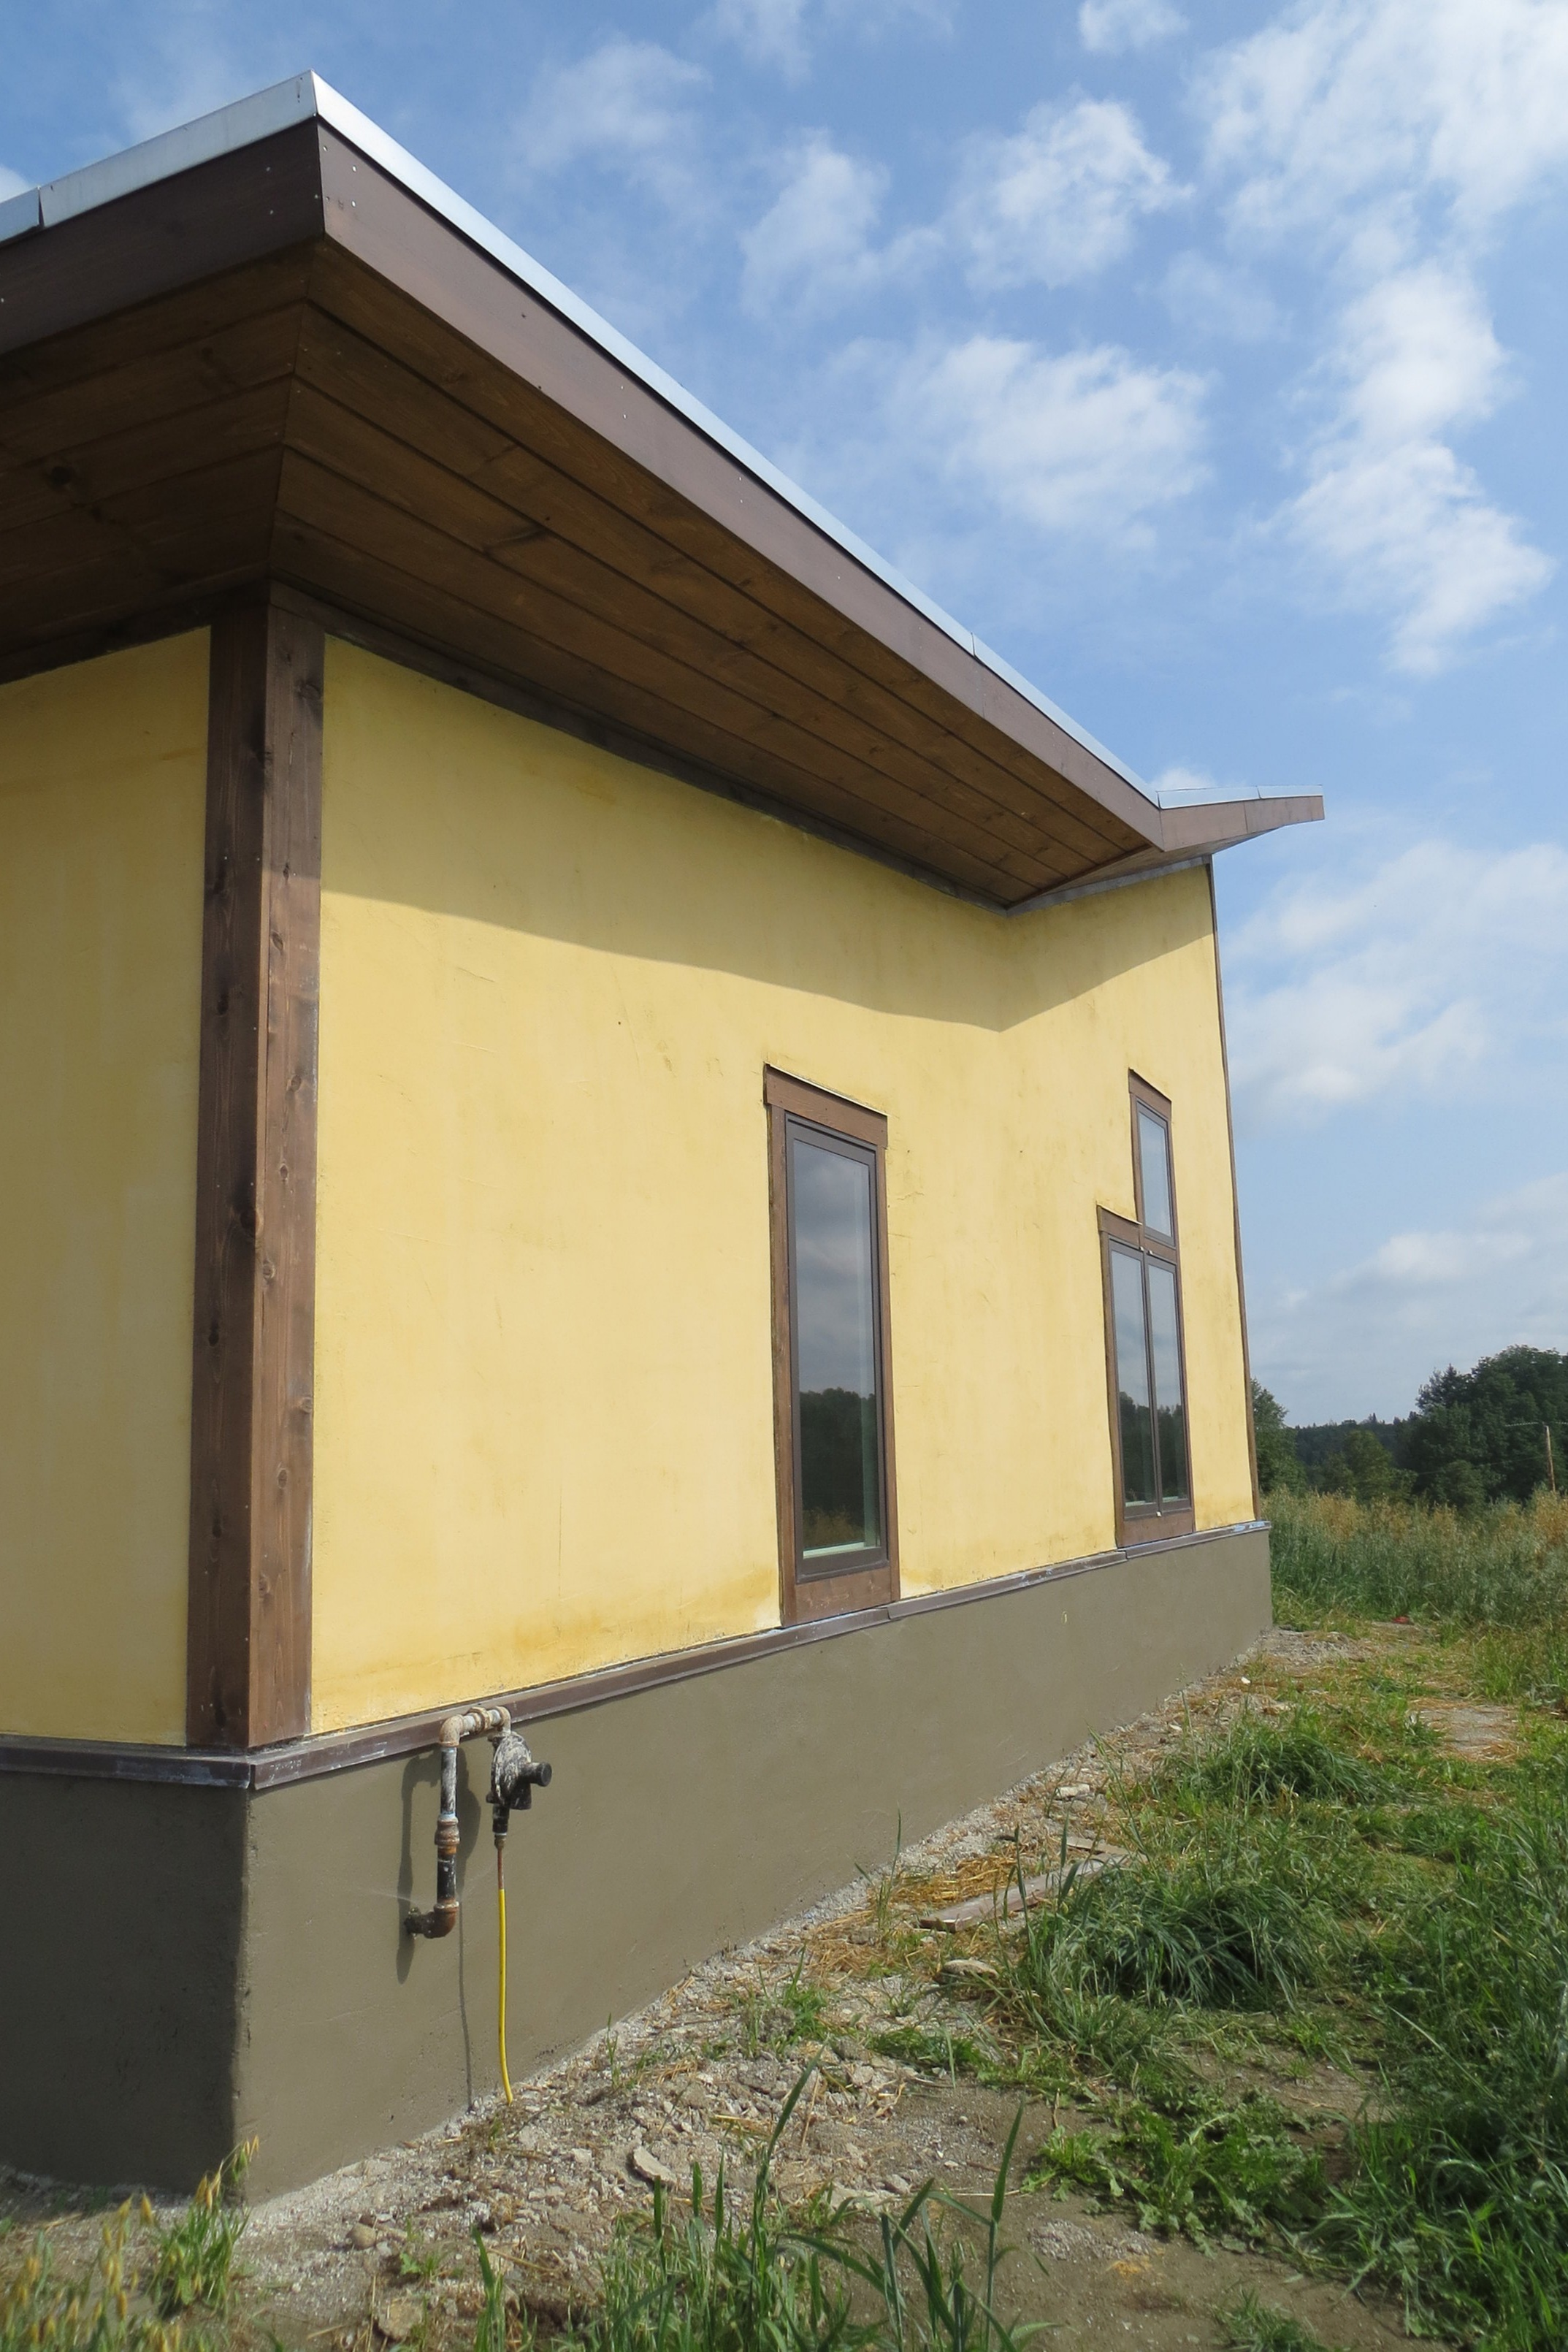 Exterior view of building corner and uplifting roof along with flared straw-bale wall with its exterior plaster.